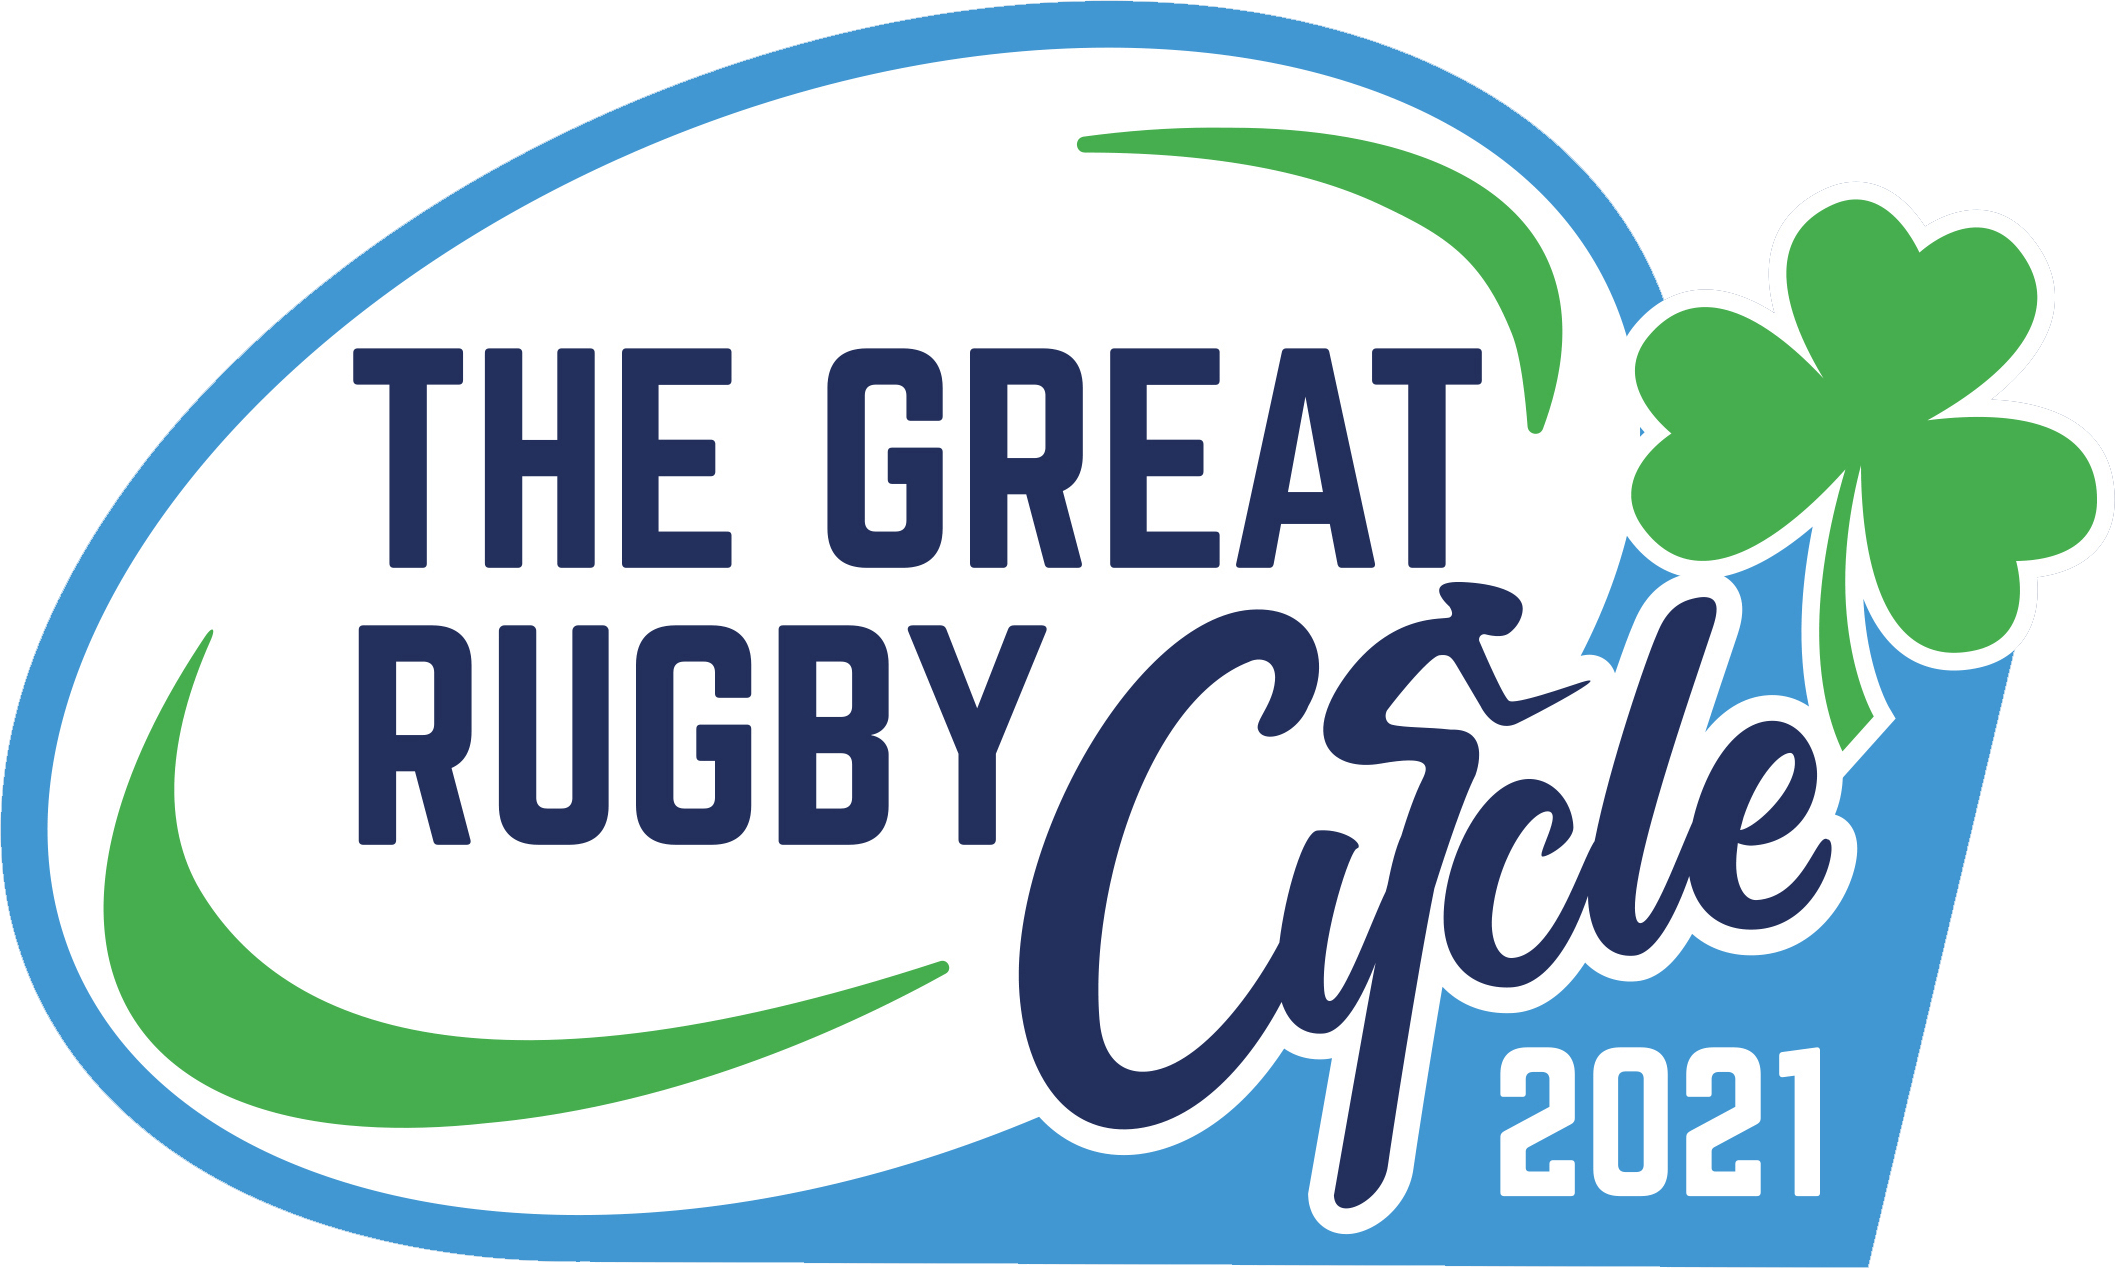 The Great Rugby Cycle 2021